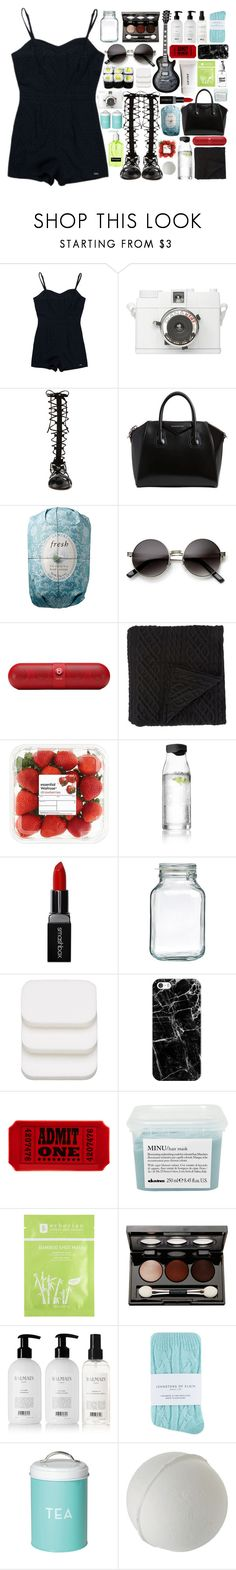 """""""head in the clouds"""" by cj-churchill ❤ liked on Polyvore featuring Superdry, Raye, Givenchy, Fresh, ZeroUV, Beats by Dr. Dre, Morgan Collection, Gibson, Menu and Smashbox"""